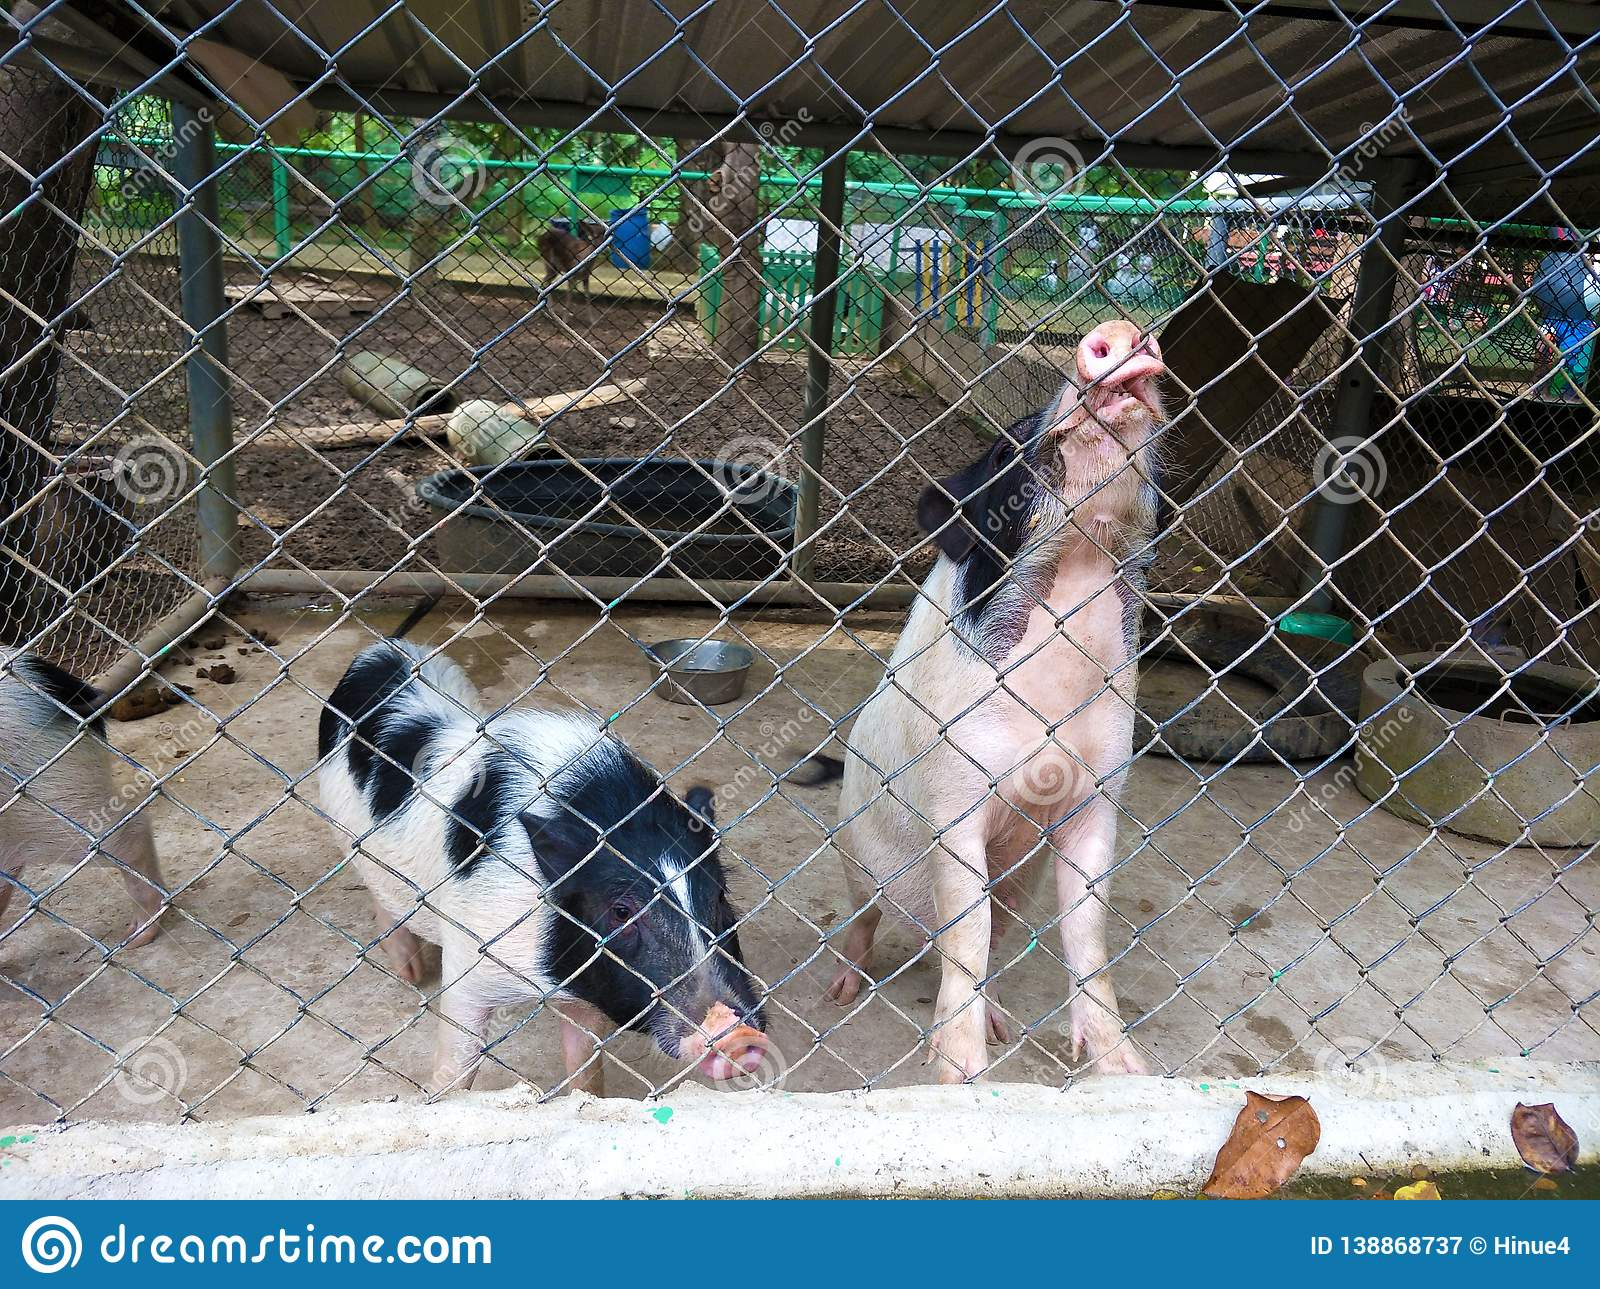 Pigs in the prison